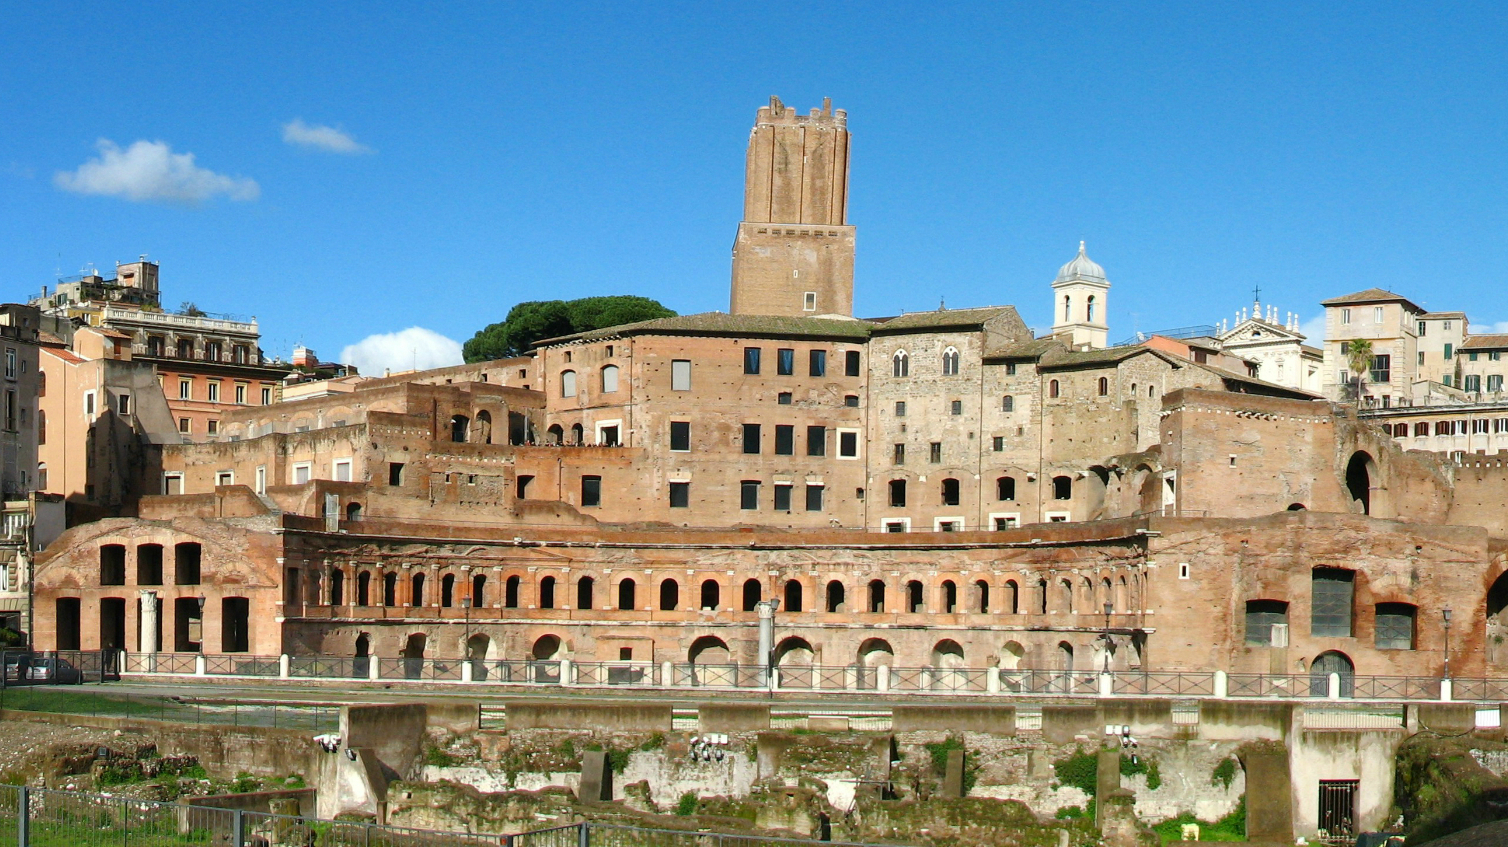 Trajan's Forum (Latin: Forum Traiani) was the last of the Imperial fora to be constructed in ancient Rom